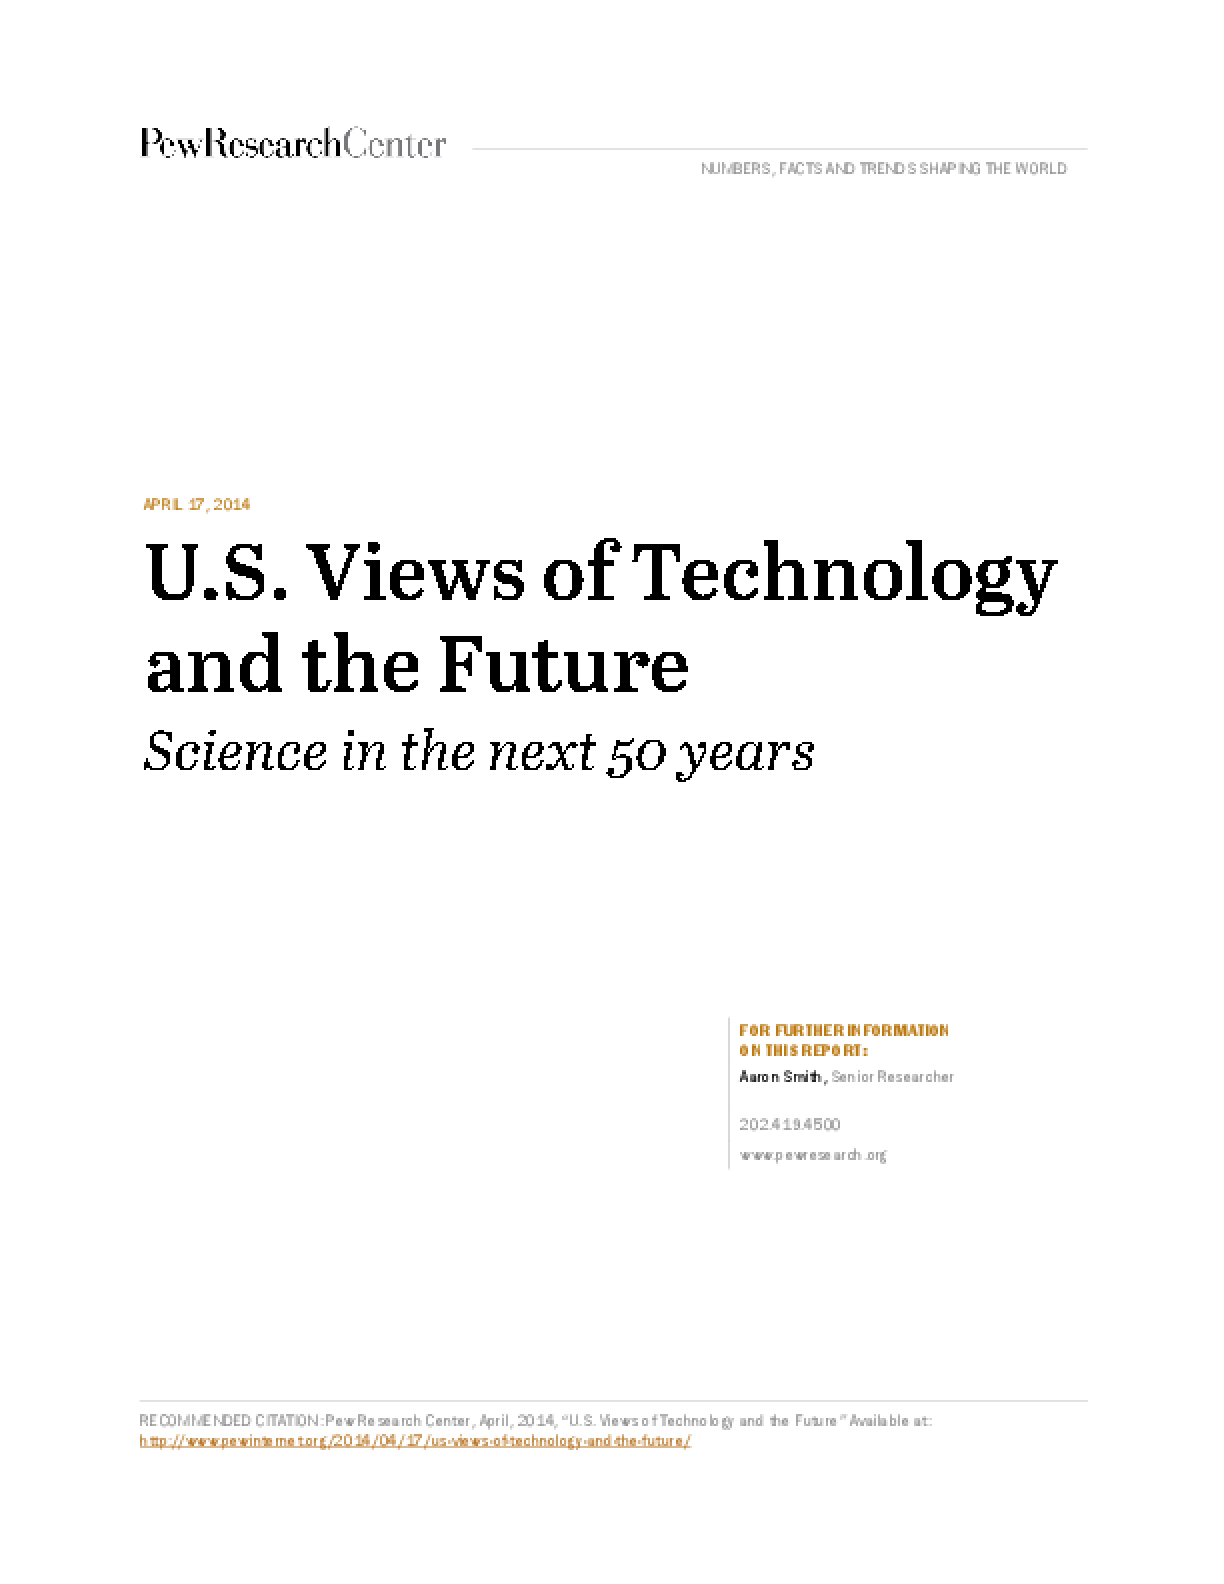 U.S. Views of Technology and the Future: Science in the Next 50 Years